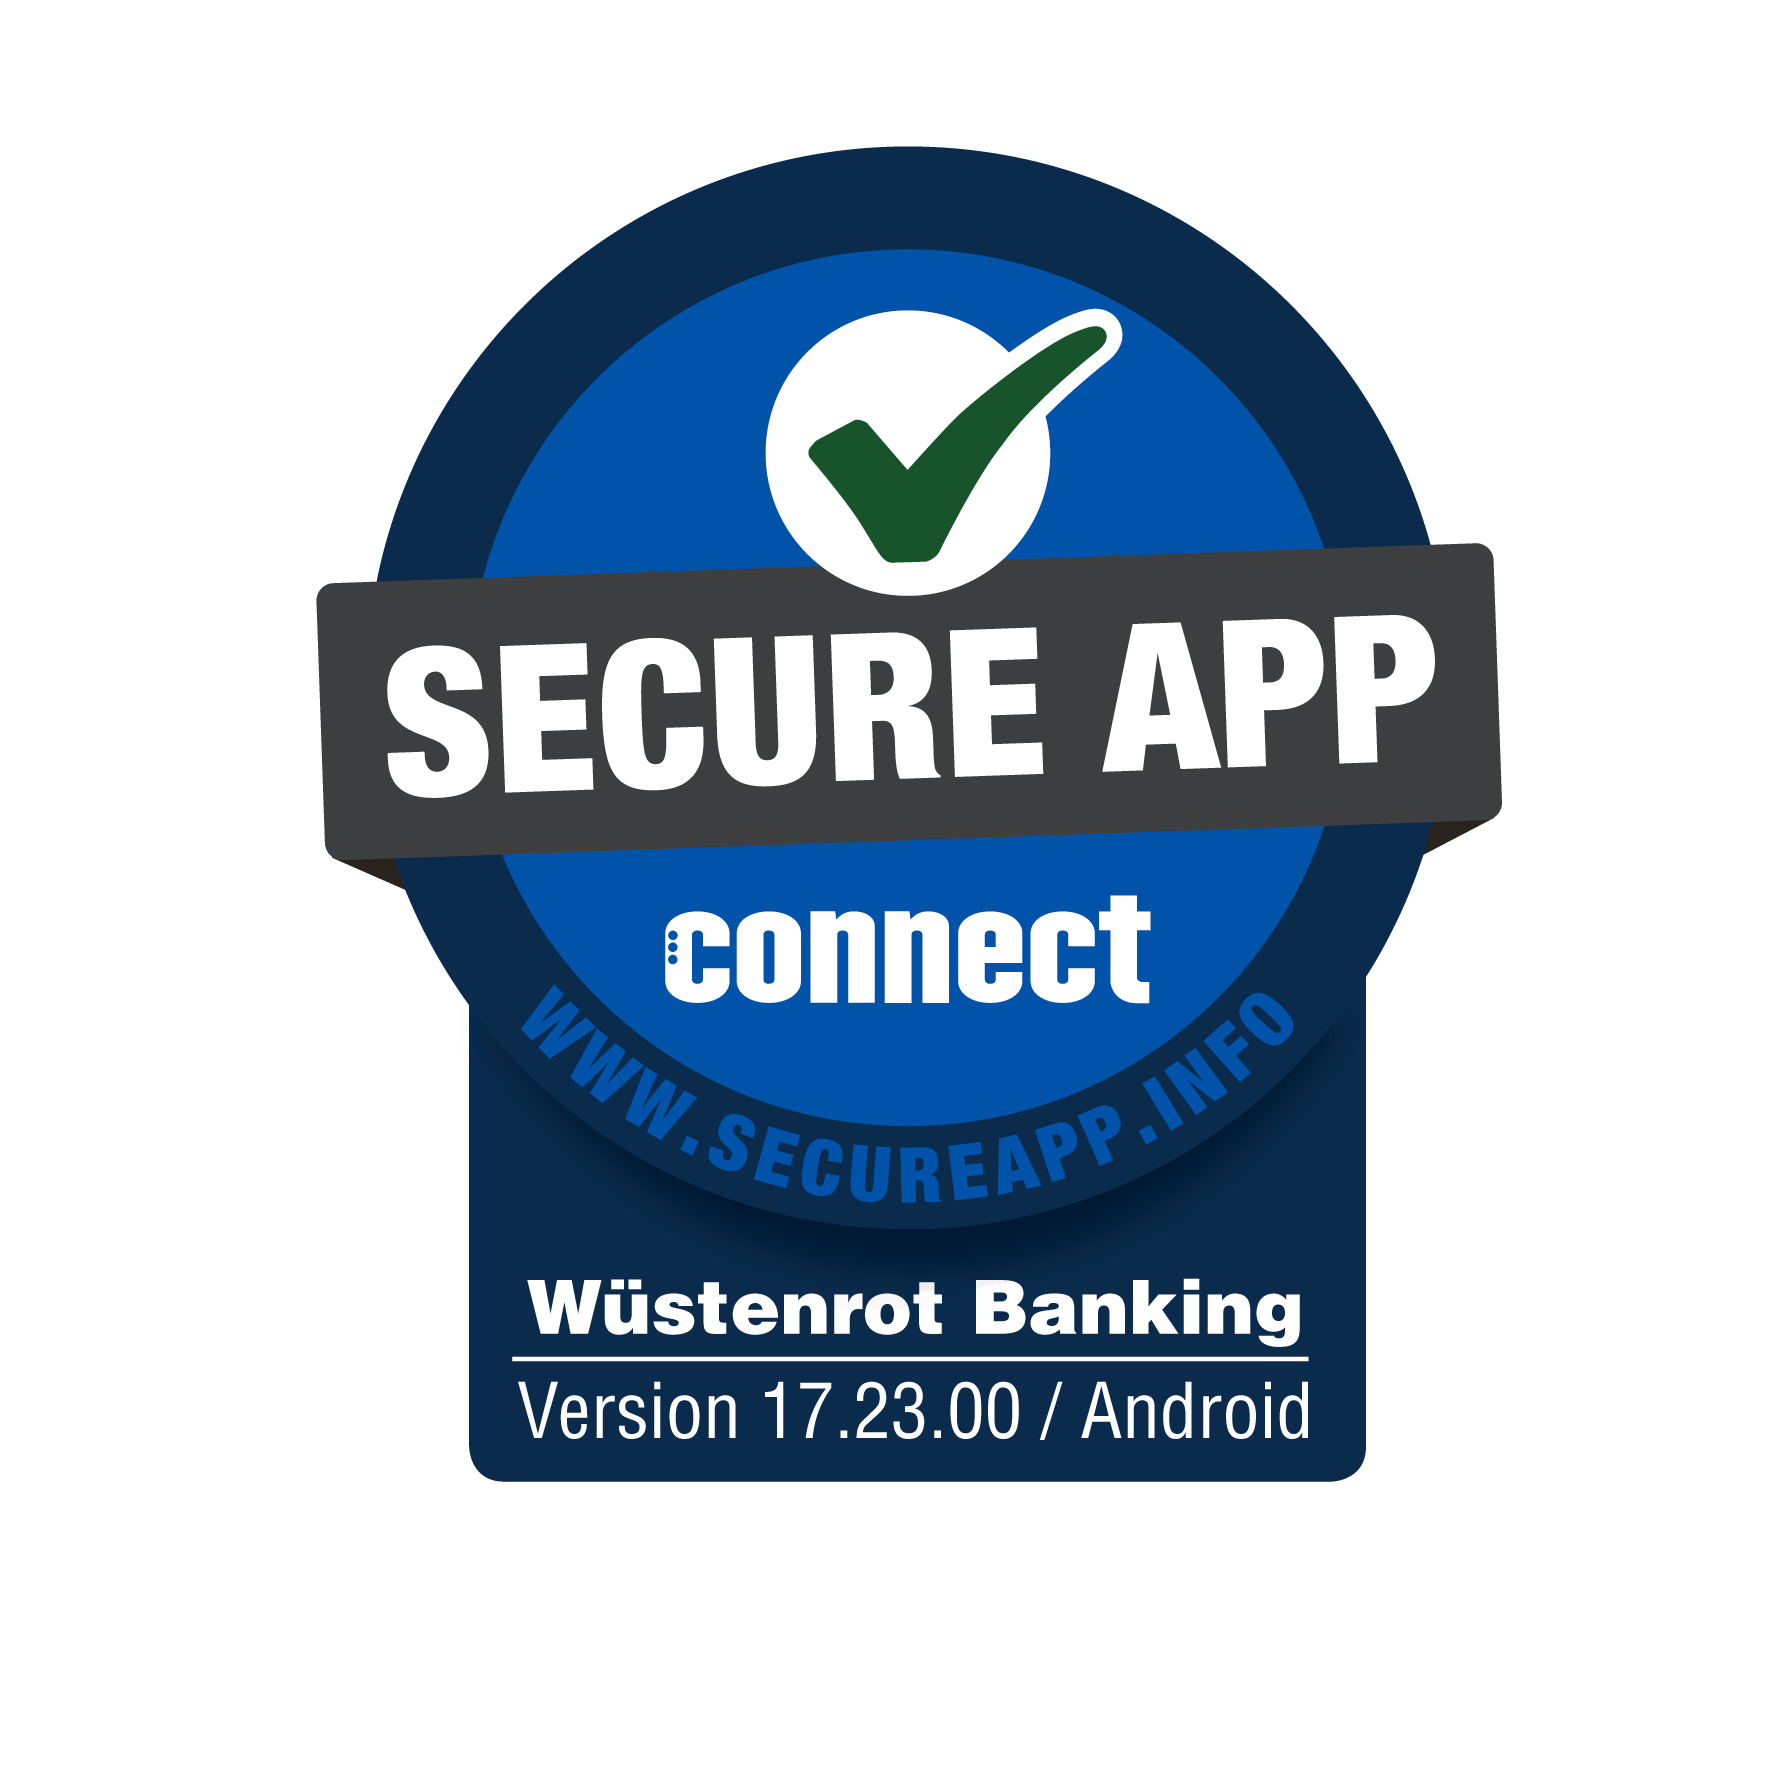 Secure App connect Wüstenrot Siegel